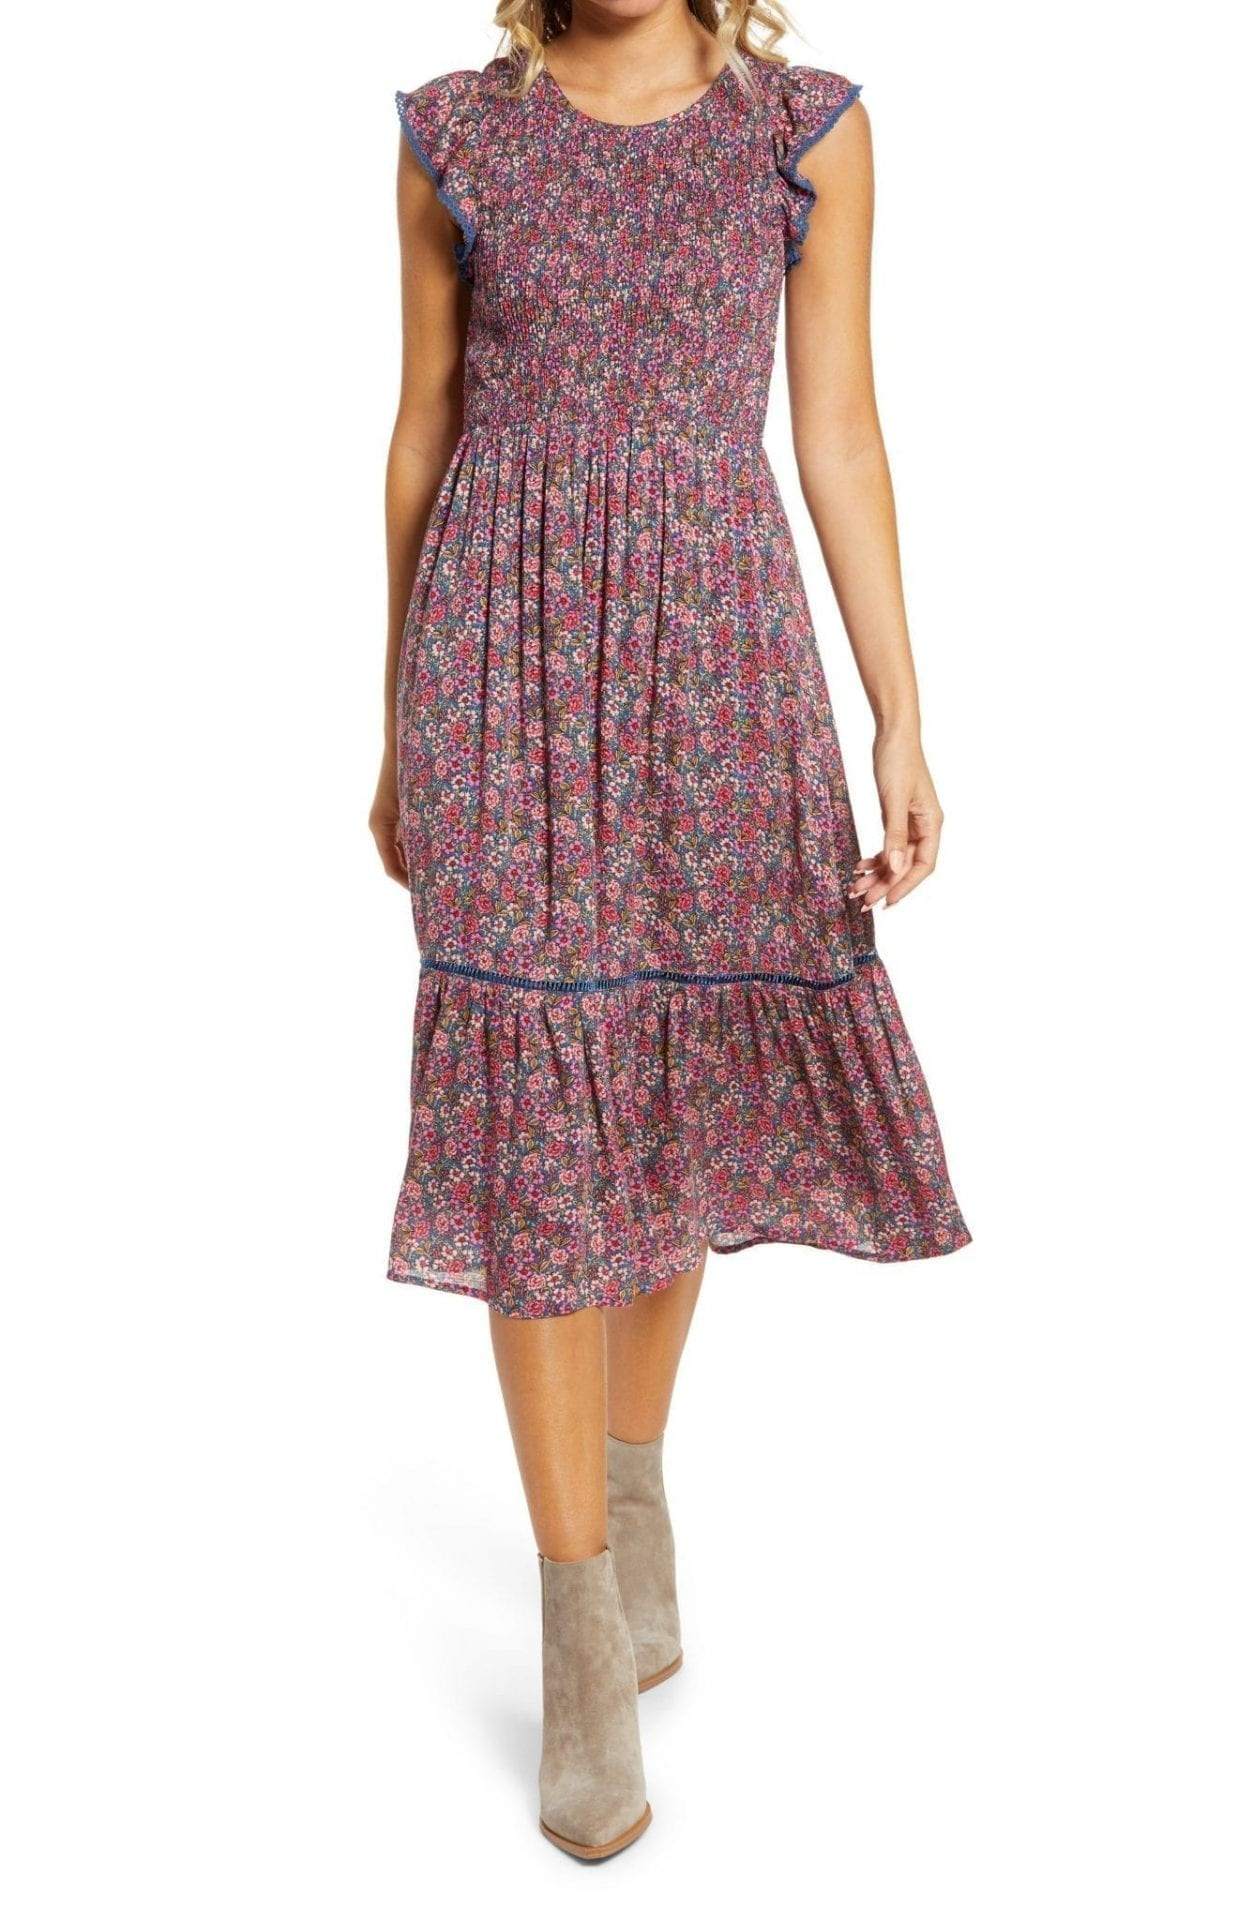 LOST + WANDER Orchid Print Smocked Midi Dress